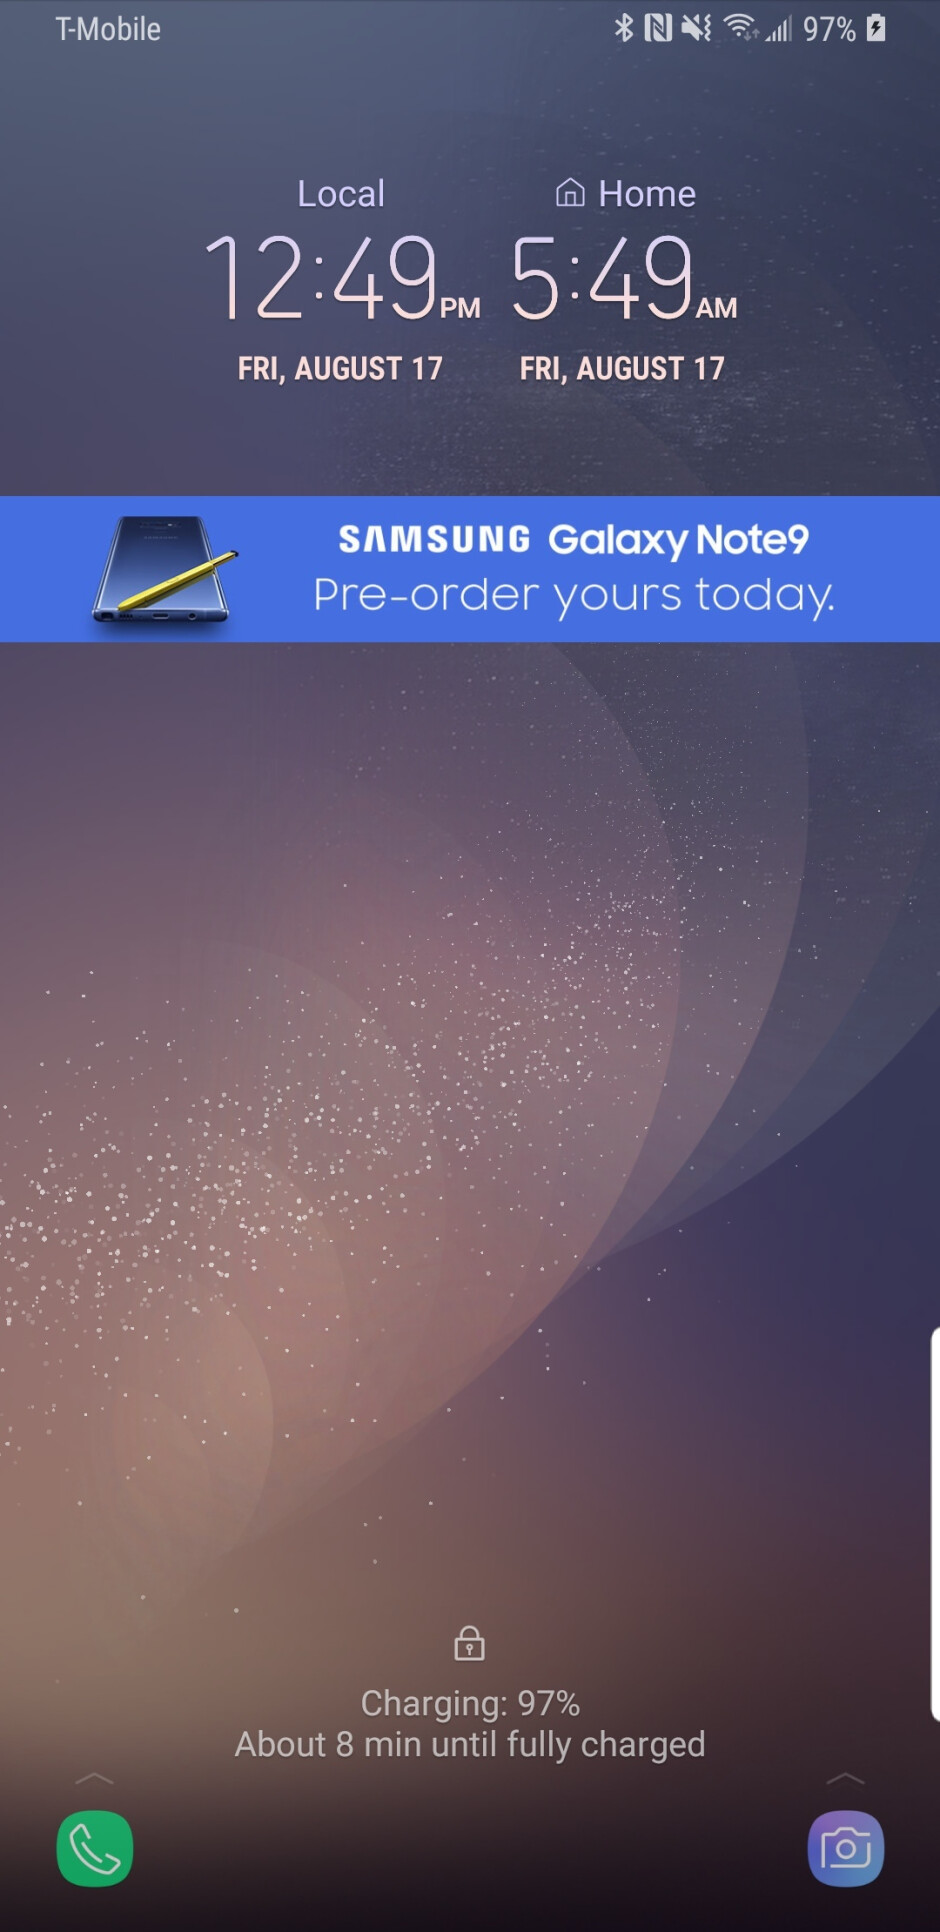 Samsung at it again: users getting unsolicited Note 9 ads on their older Galaxy devices